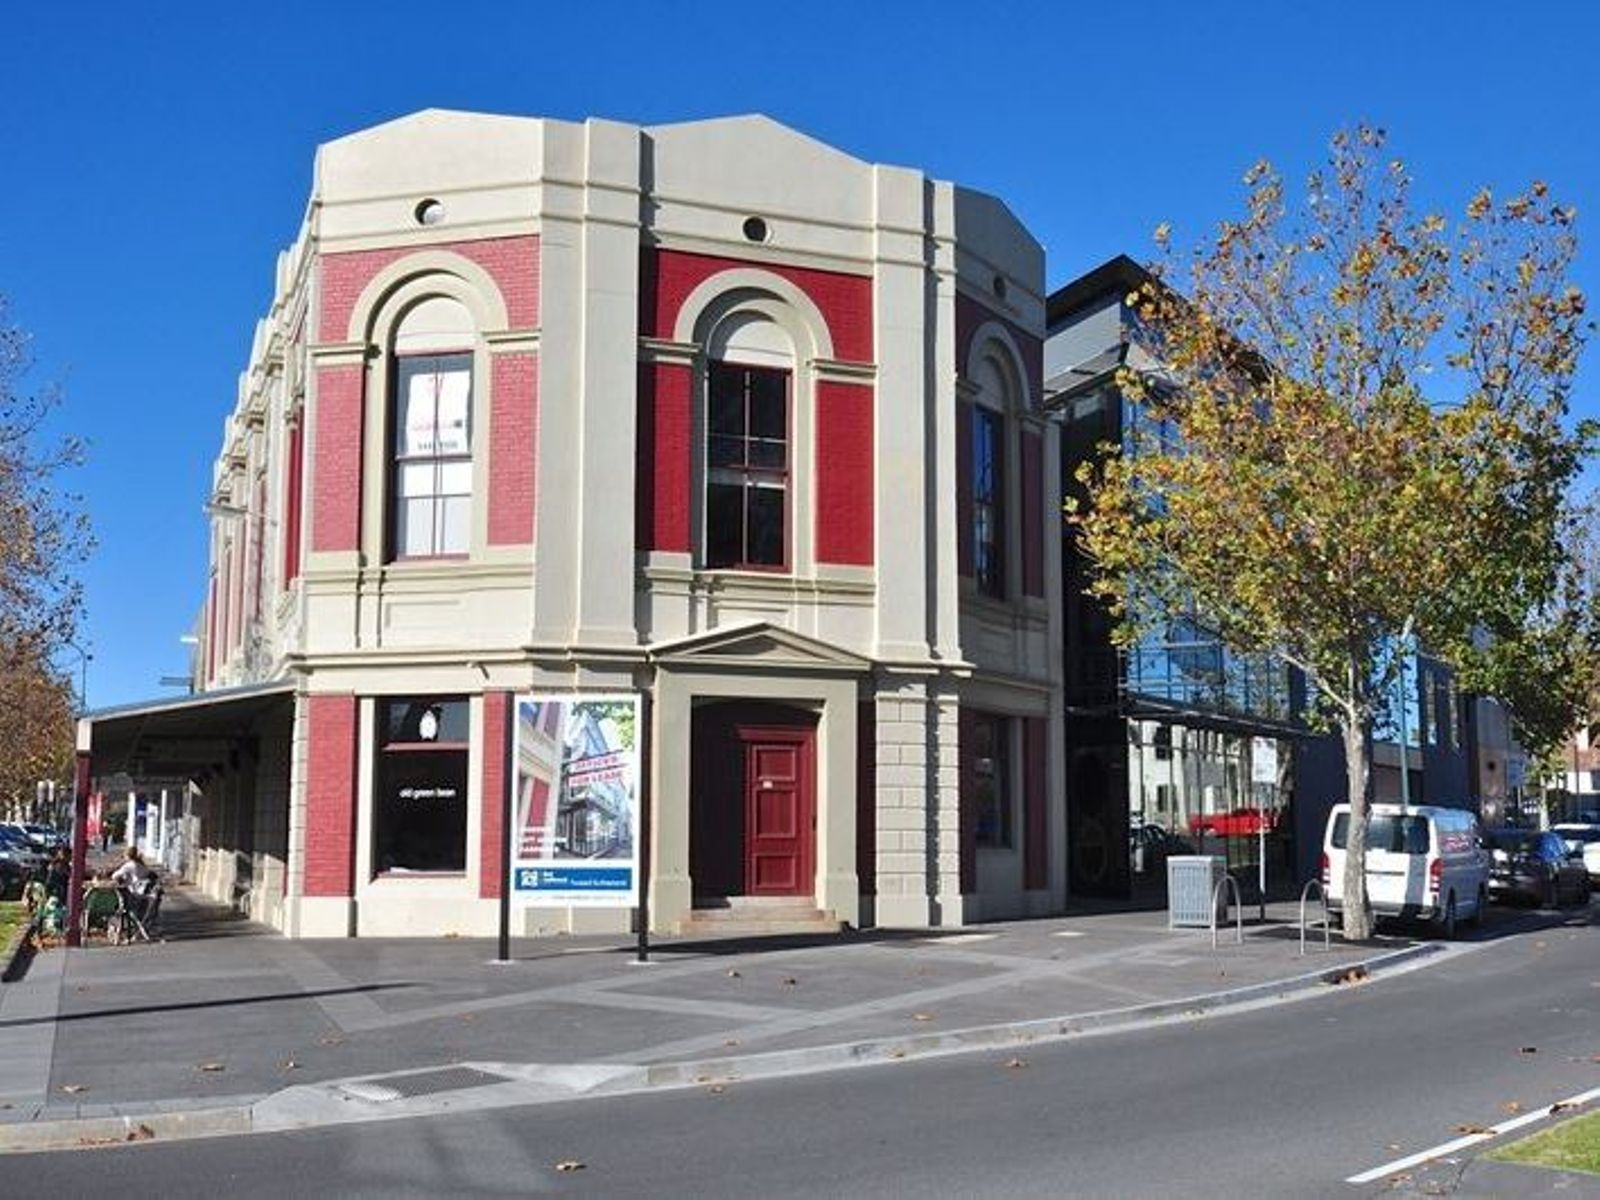 41-43 Mundy Street, Bendigo, VIC 3550